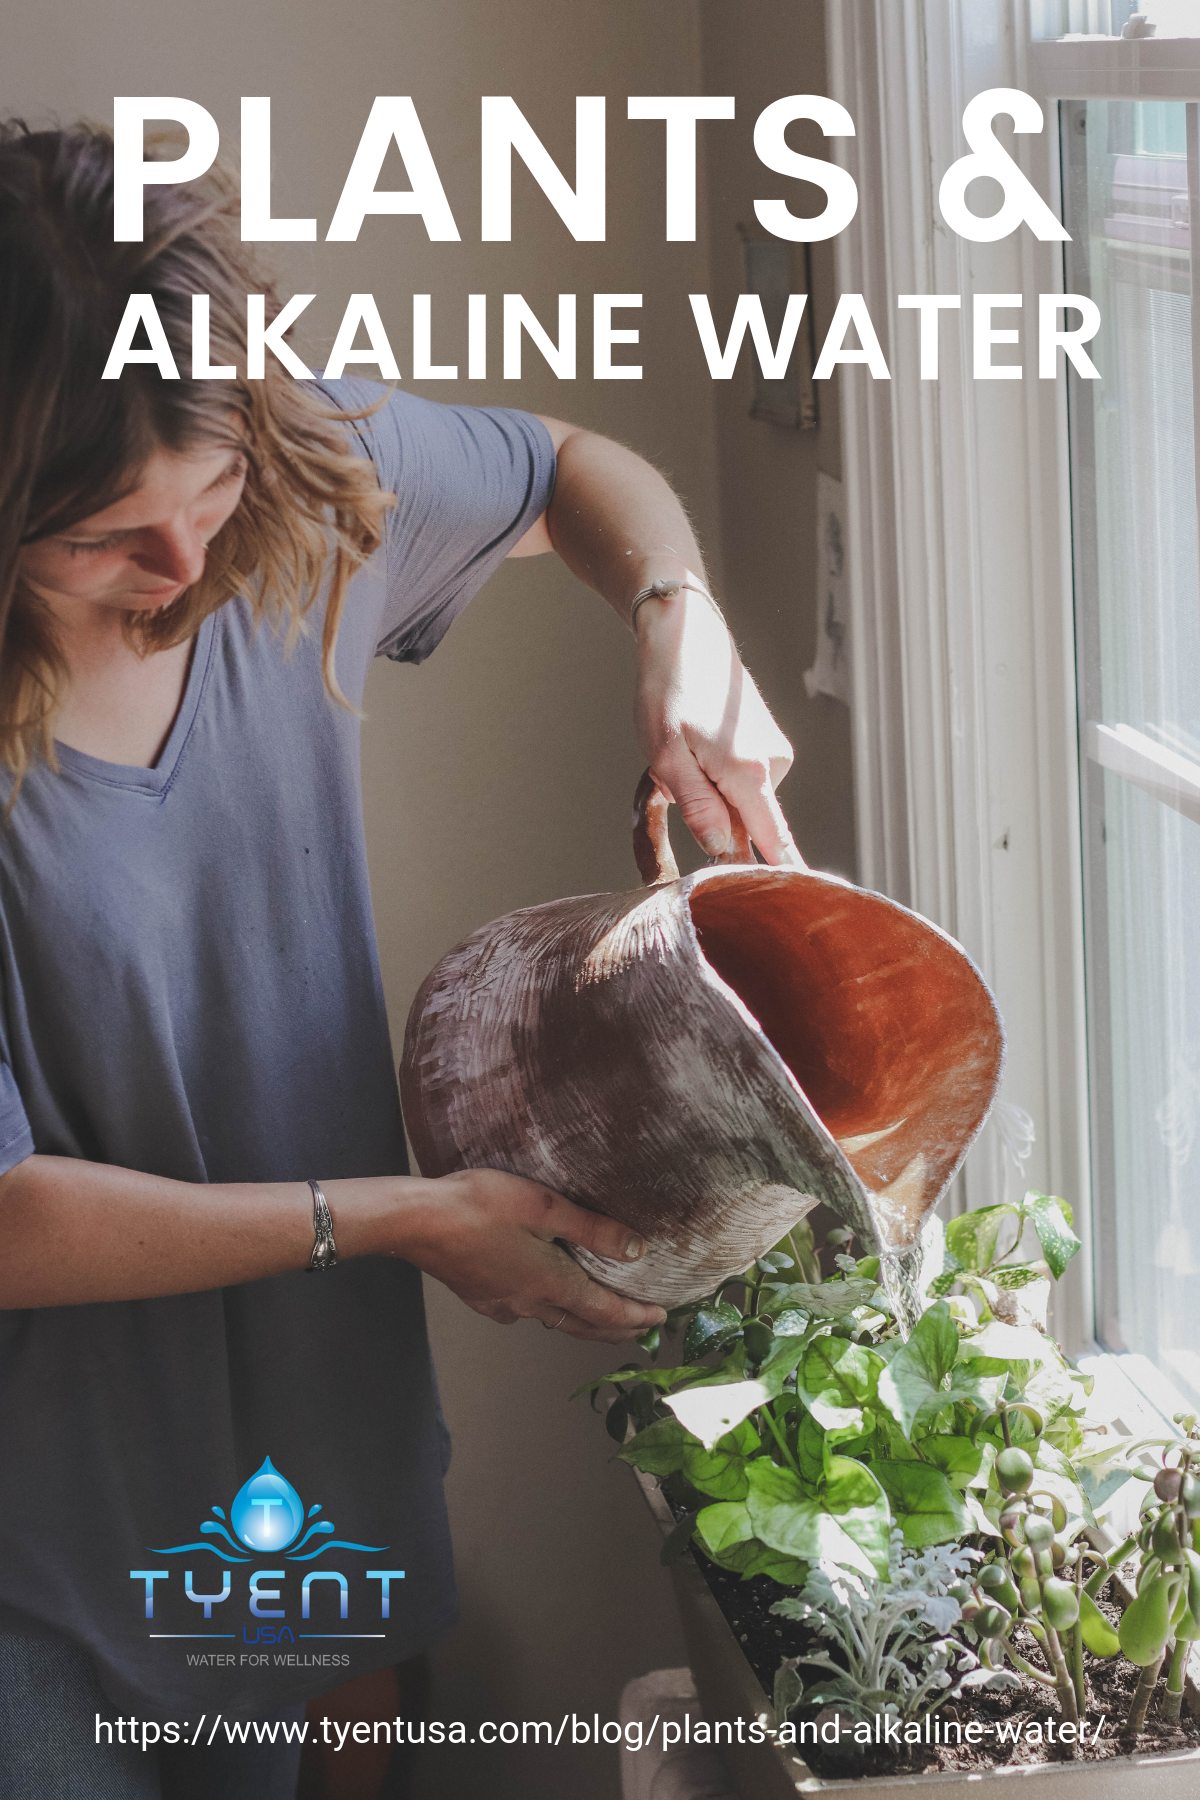 Plants And Alkaline Water https://www.tyentusa.com/blog/plants-and-alkaline-water/